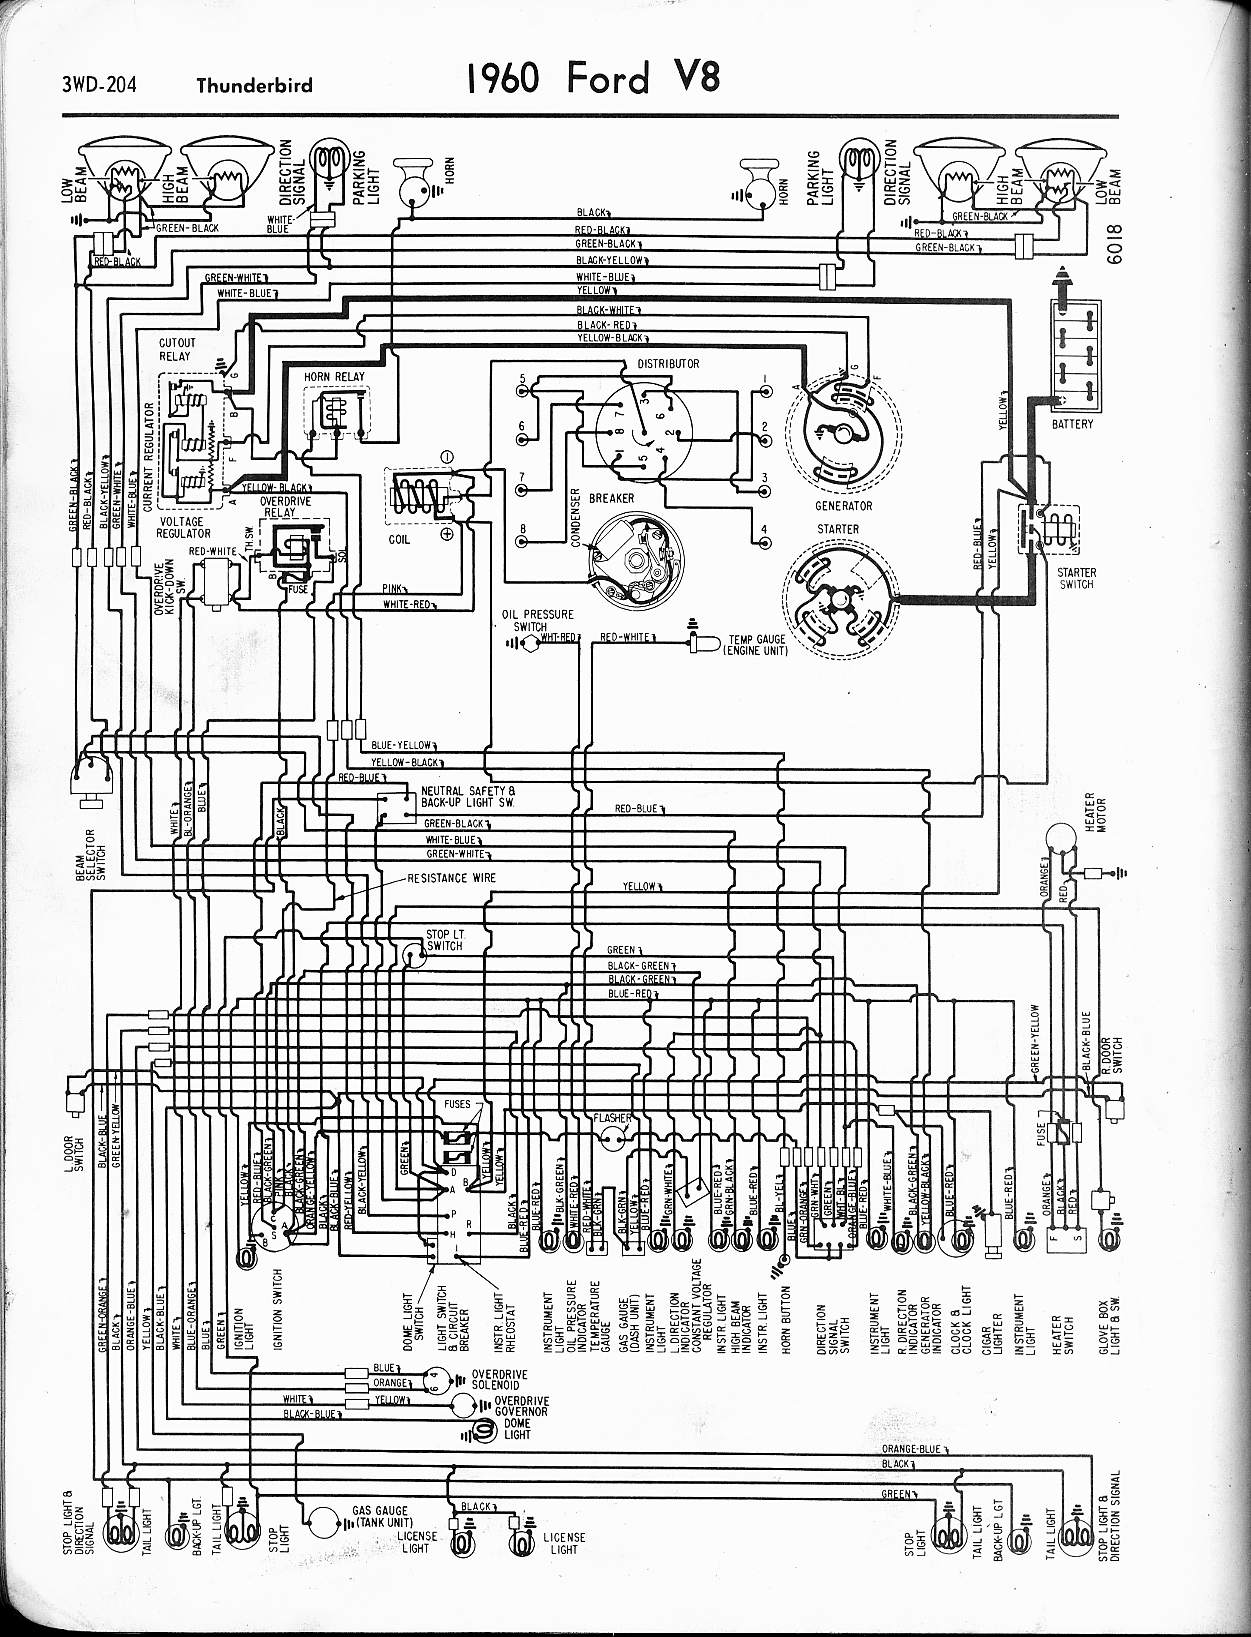 55 Chevy Truck Wiring Diagram besides respond in addition  as well Body Wiring Diagram For 1957 Chevrolet Passenger Car Sport Coupe as well Pin Up Wallpaper Pin Up Girls 5492120 1024 768. on 55 chevy fuse panel diagram wiring diagrams 1955 ignition radio